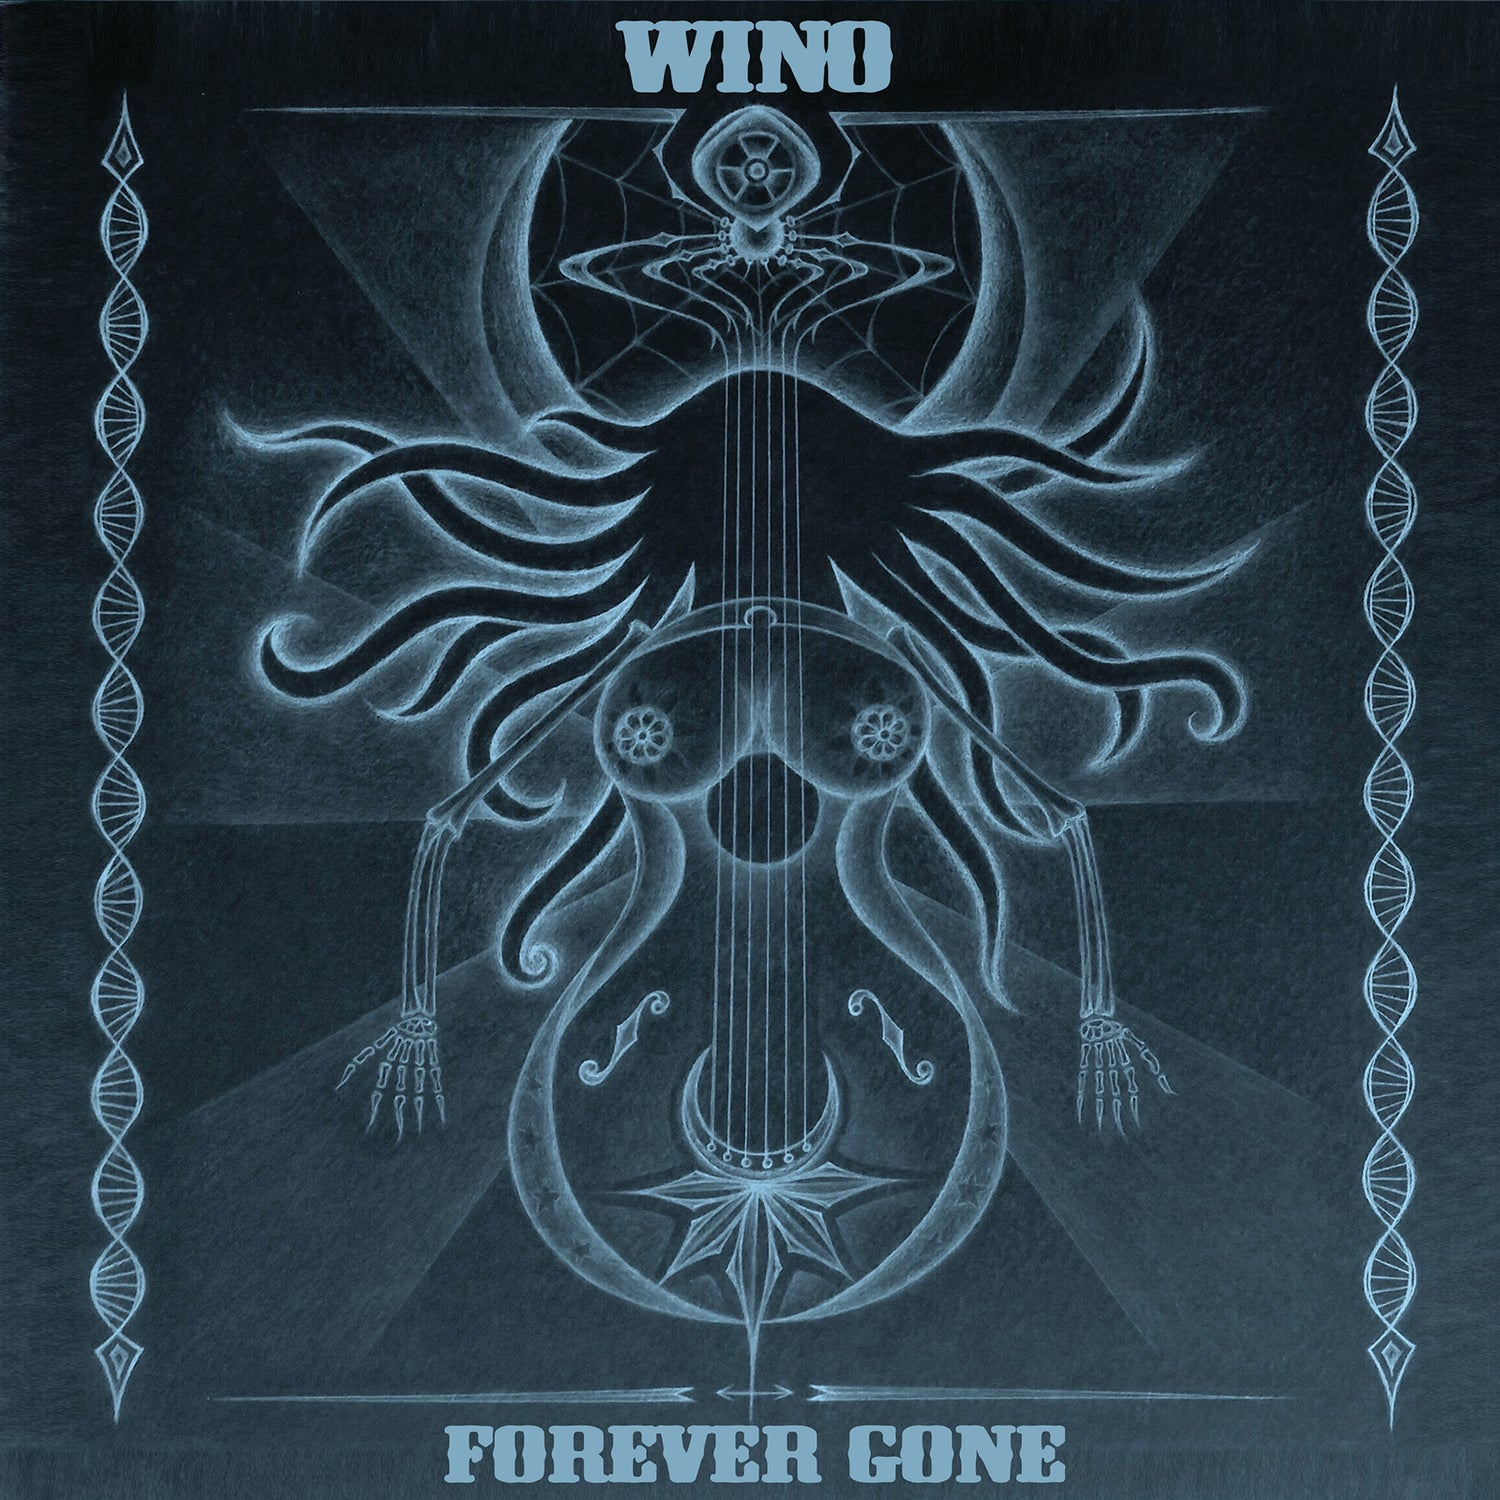 Image of Wino - Forever Gone Deluxe Vinyl Editions